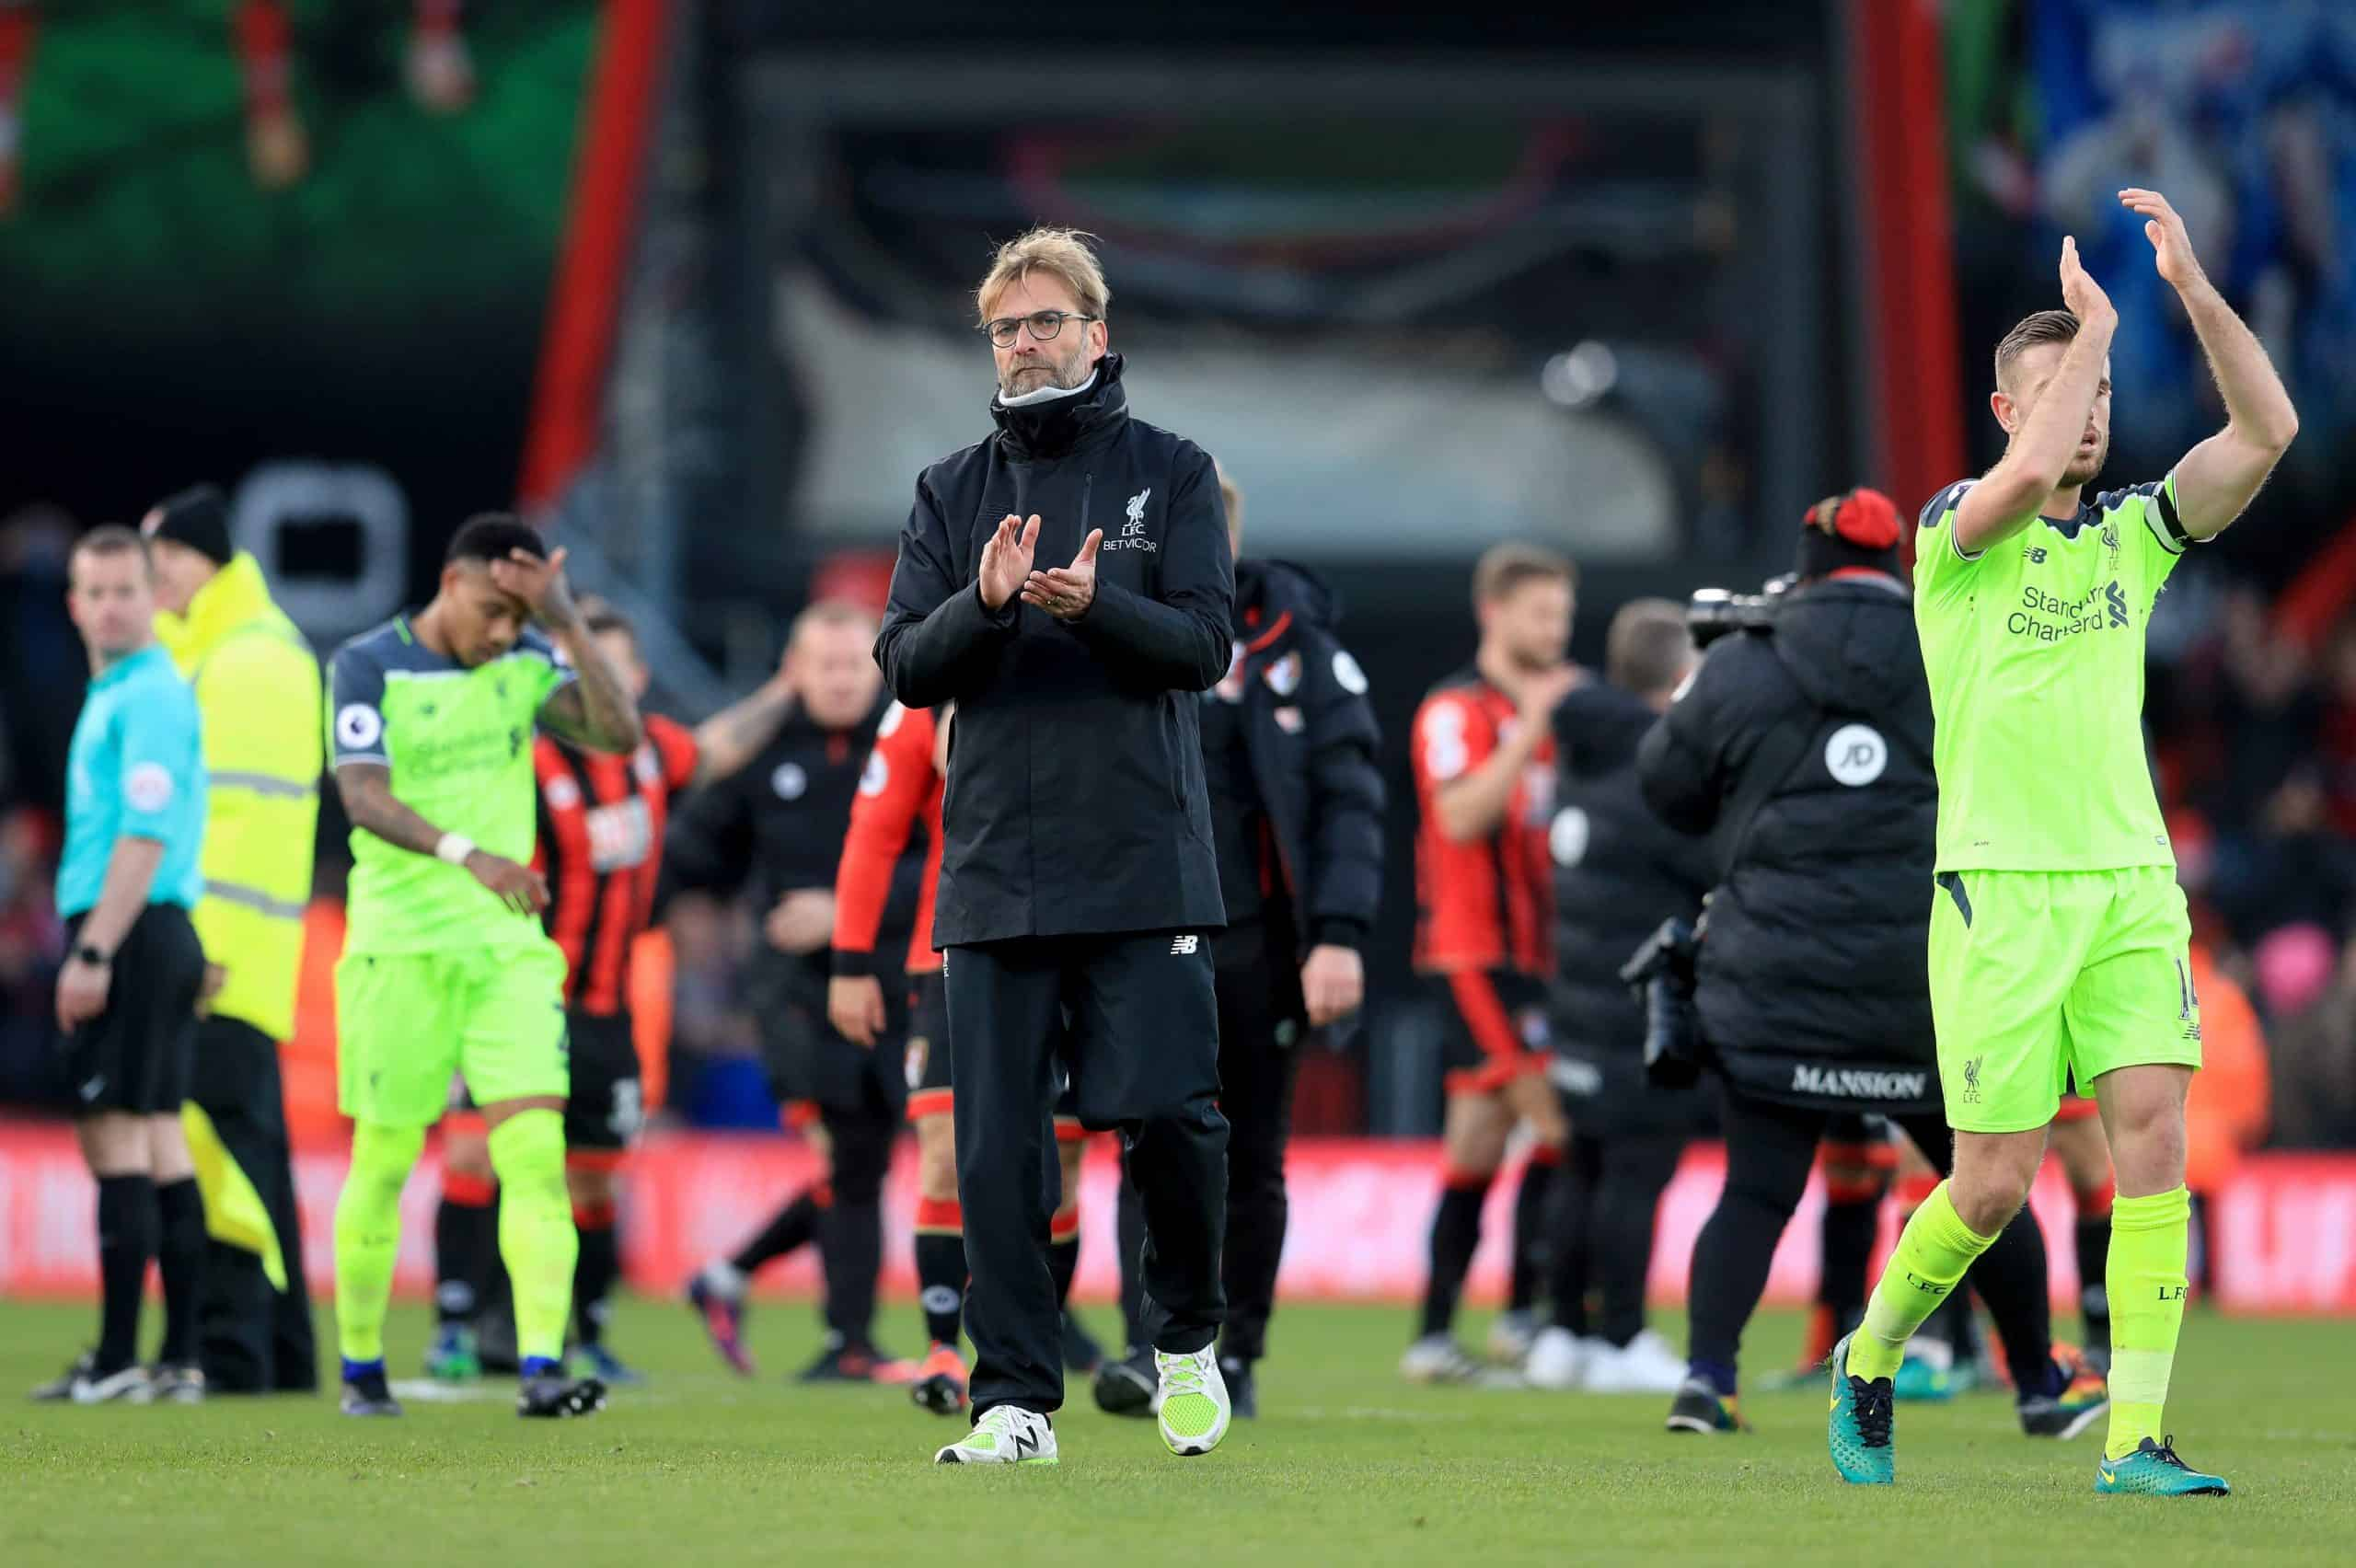 Liverpool manager Jurgen Klopp appears dejected after the final whistle during the Premier League match at the Vitality Stadium, Bournemouth. December 4 2016 (Picture by Adam Davy PA Wire/PA Images)